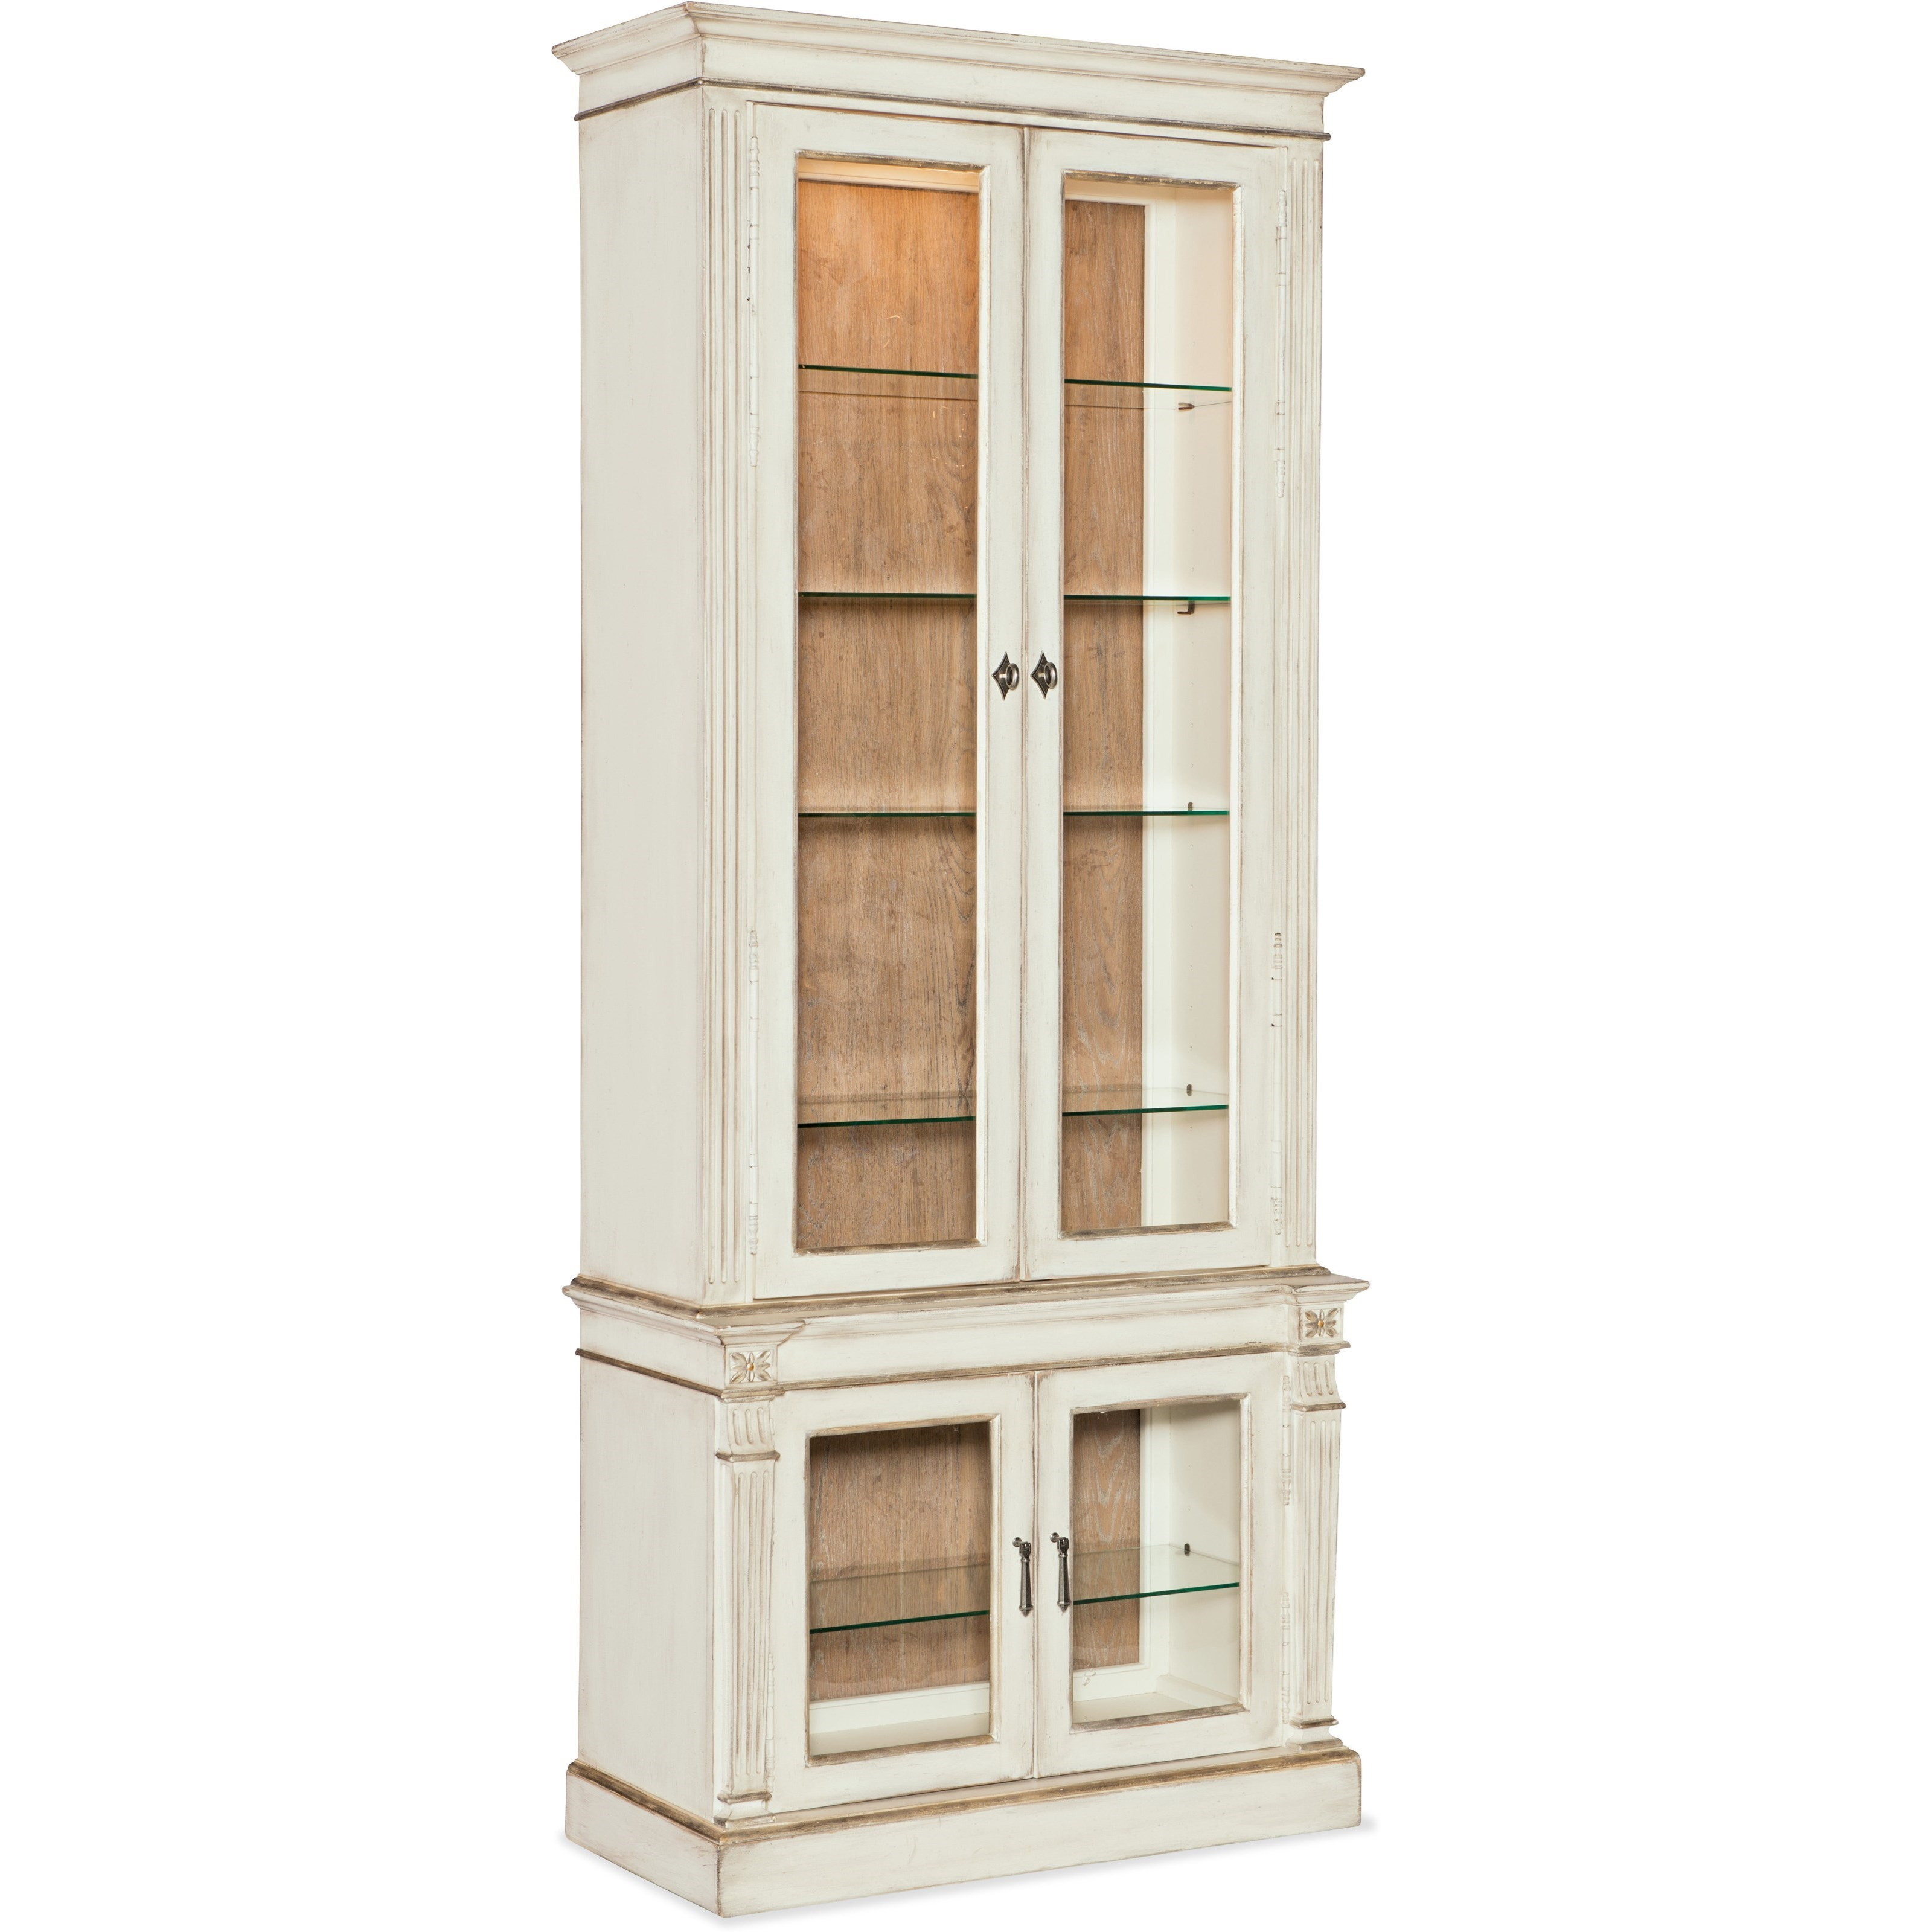 Sanctuary Display Cabinet by Hooker Furniture at Miller Waldrop Furniture and Decor